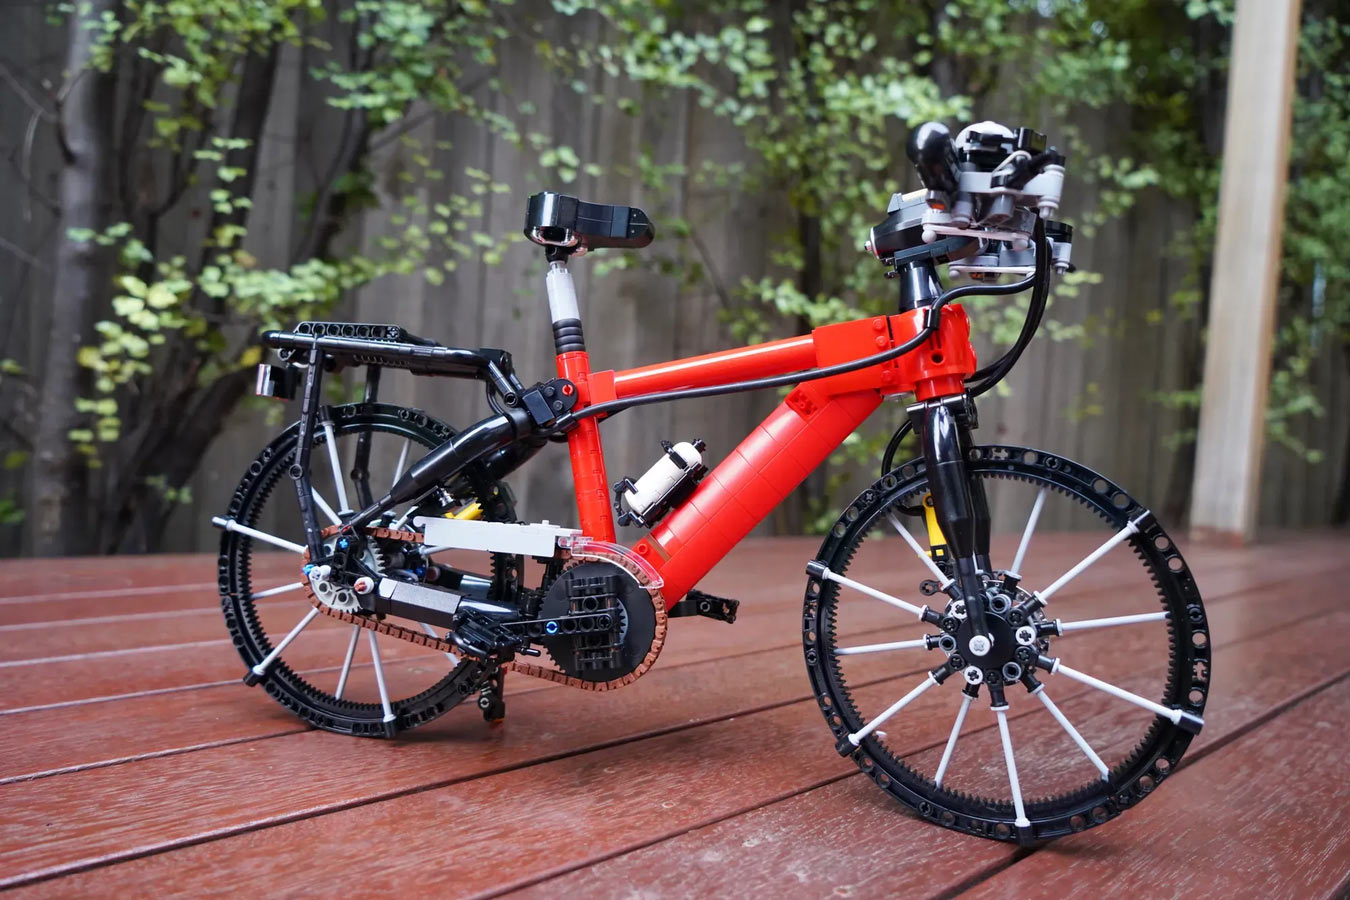 working lego bicycle concept from sleepycow shown from drive side